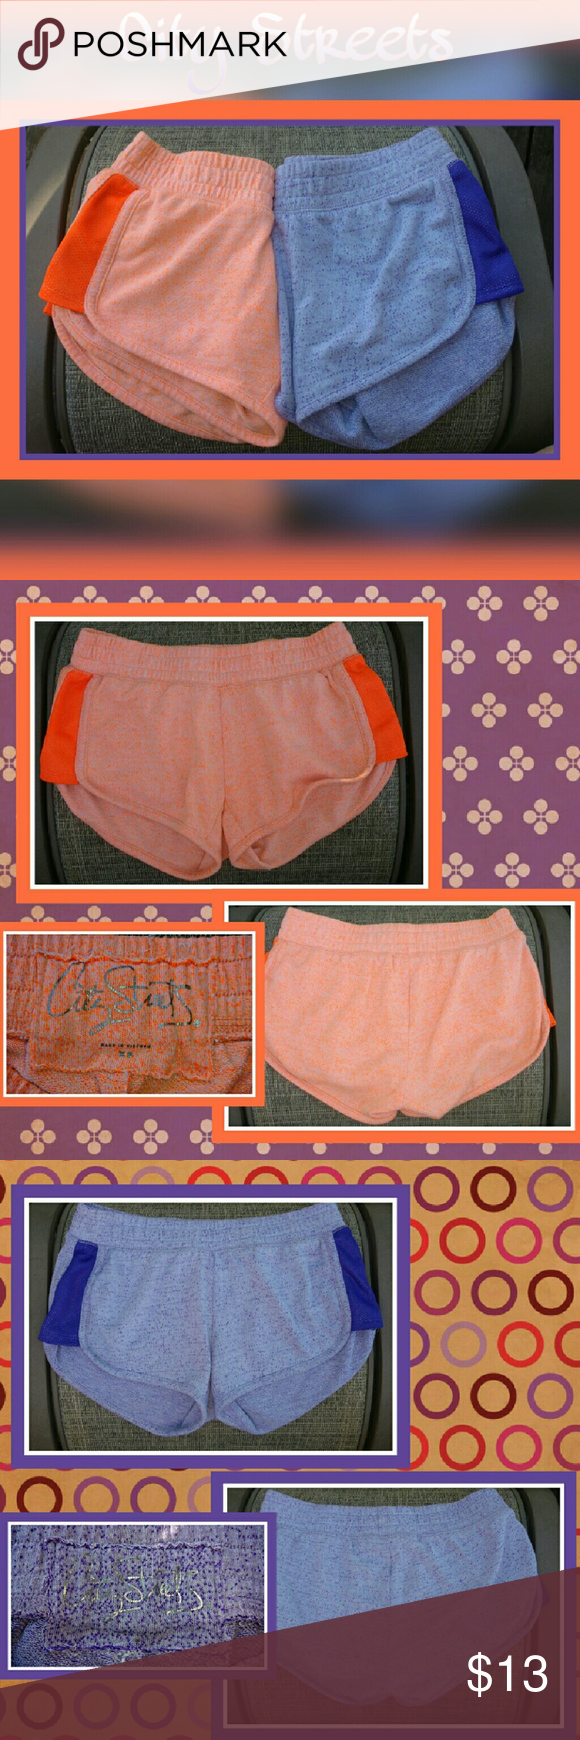 Bundle: 2 pair XS running shorts Cute short shorts! Elastic waistband; contrastings colored breathable panels on each side. Cotton/polyester blend City Streets Shorts